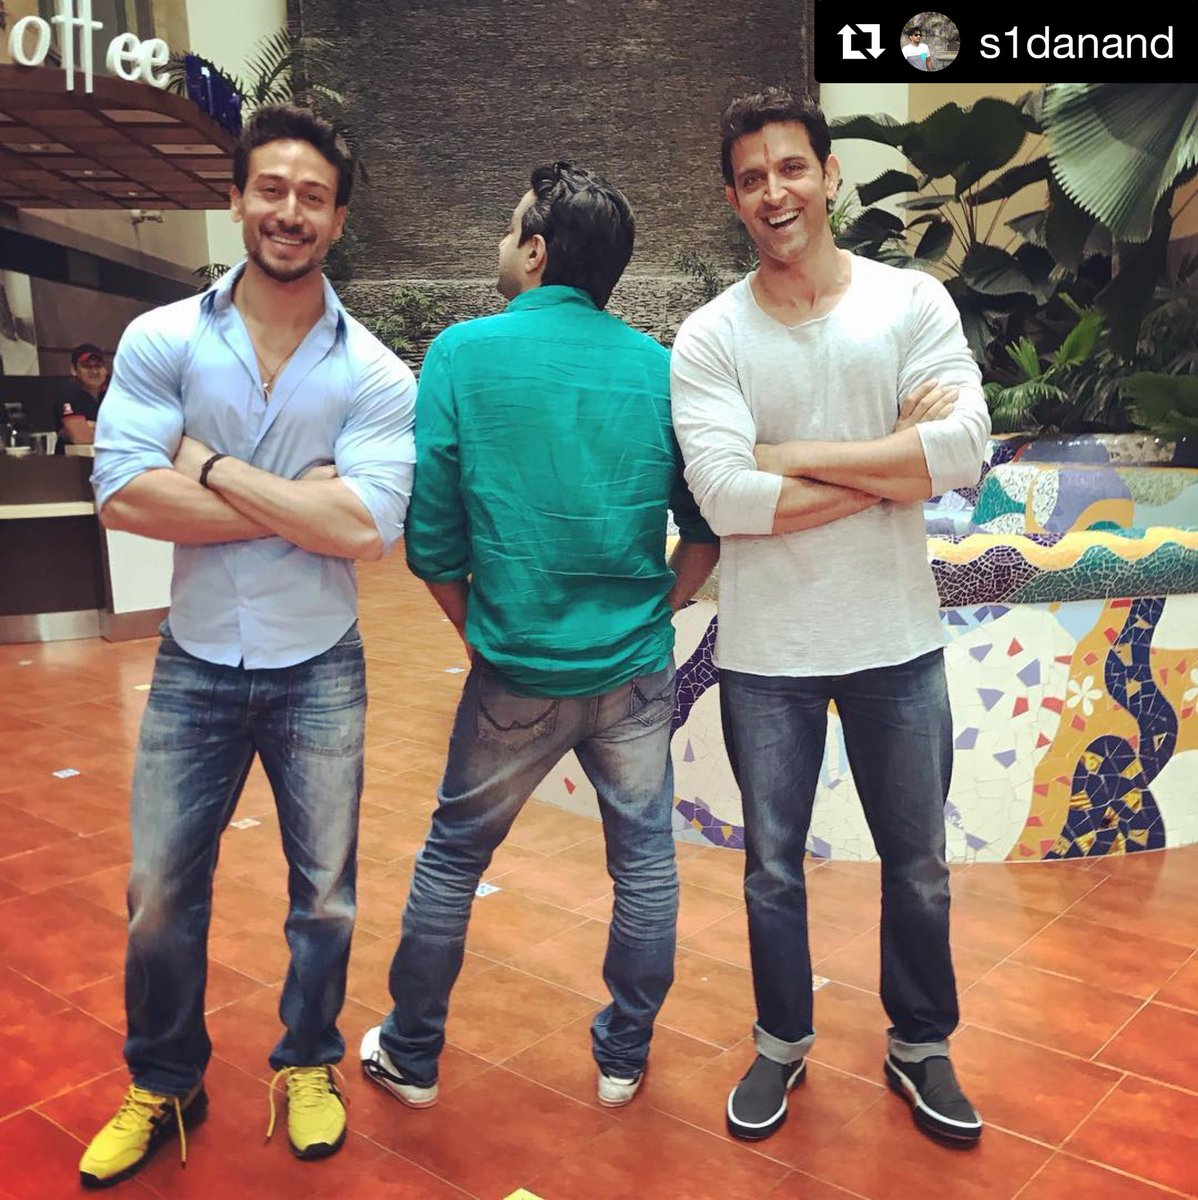 And people thought it was a 2 hero film. Journey begins #HrithikvsTiger @iTIGERSHROFF #sidanand